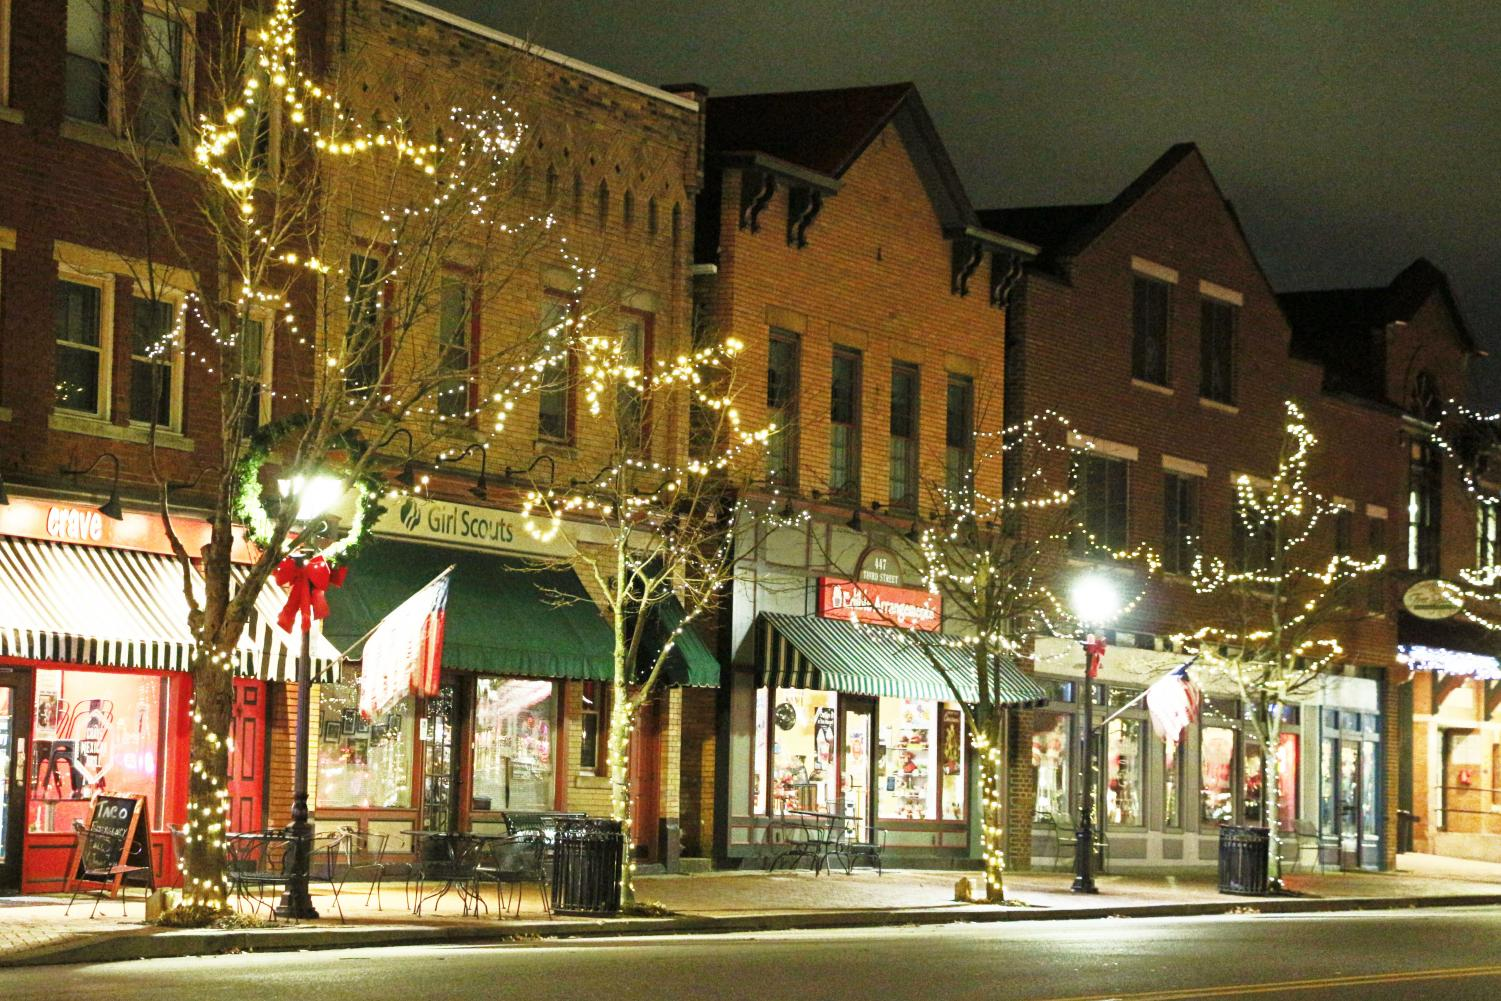 Stores and Christmas lights make the town of Beaver festive on Third Street.